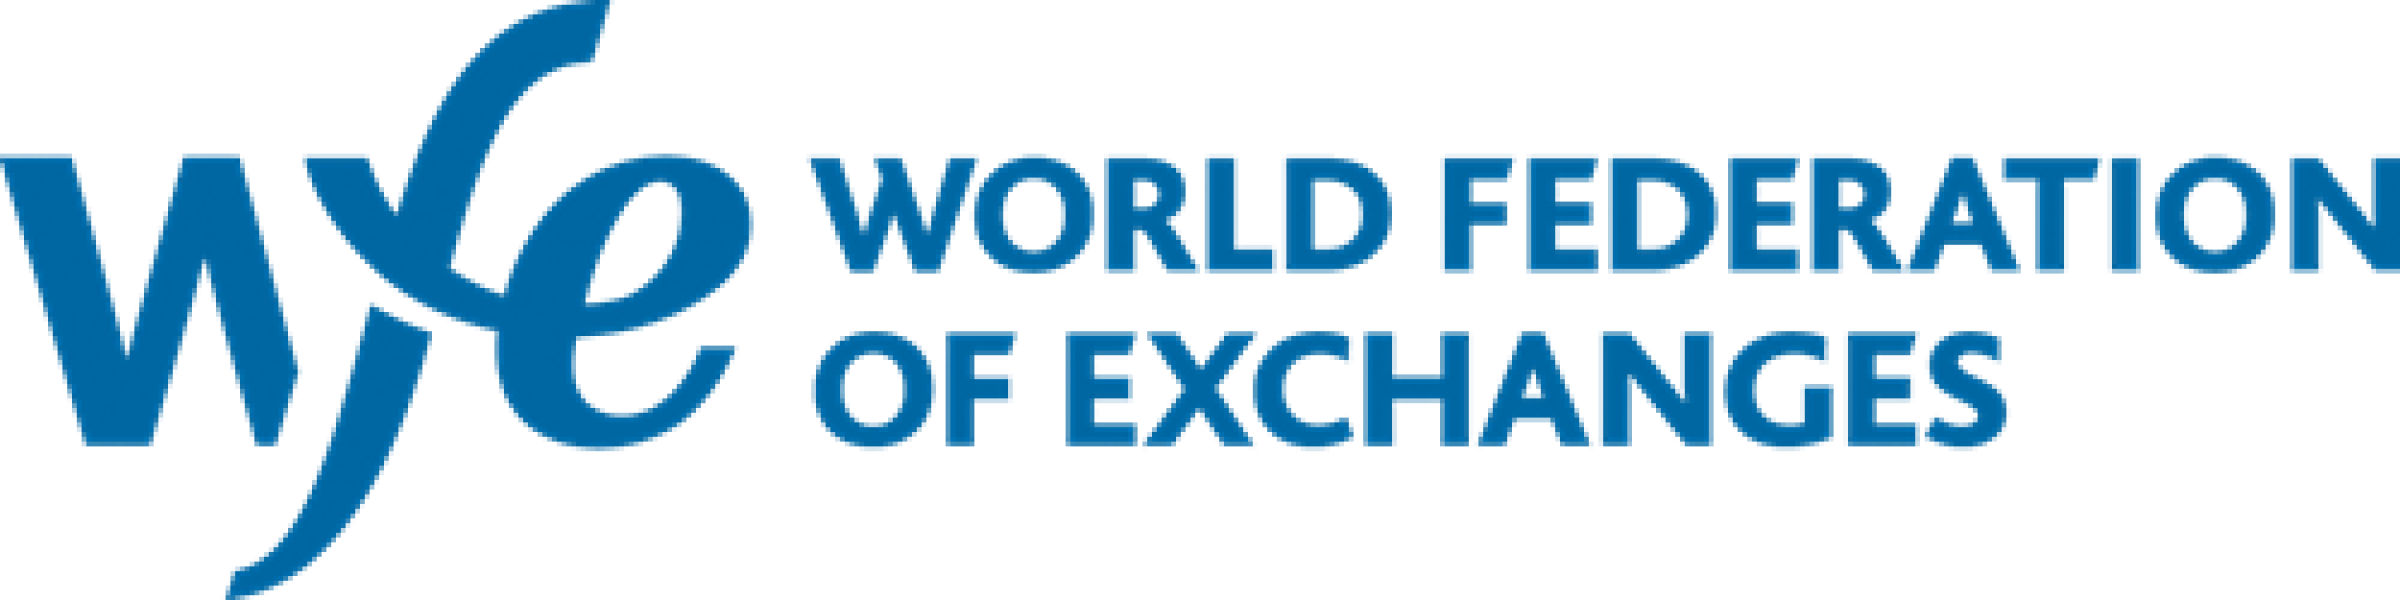 WFE-Full-Year-Statistics-Show-2015-Global-Equity-T